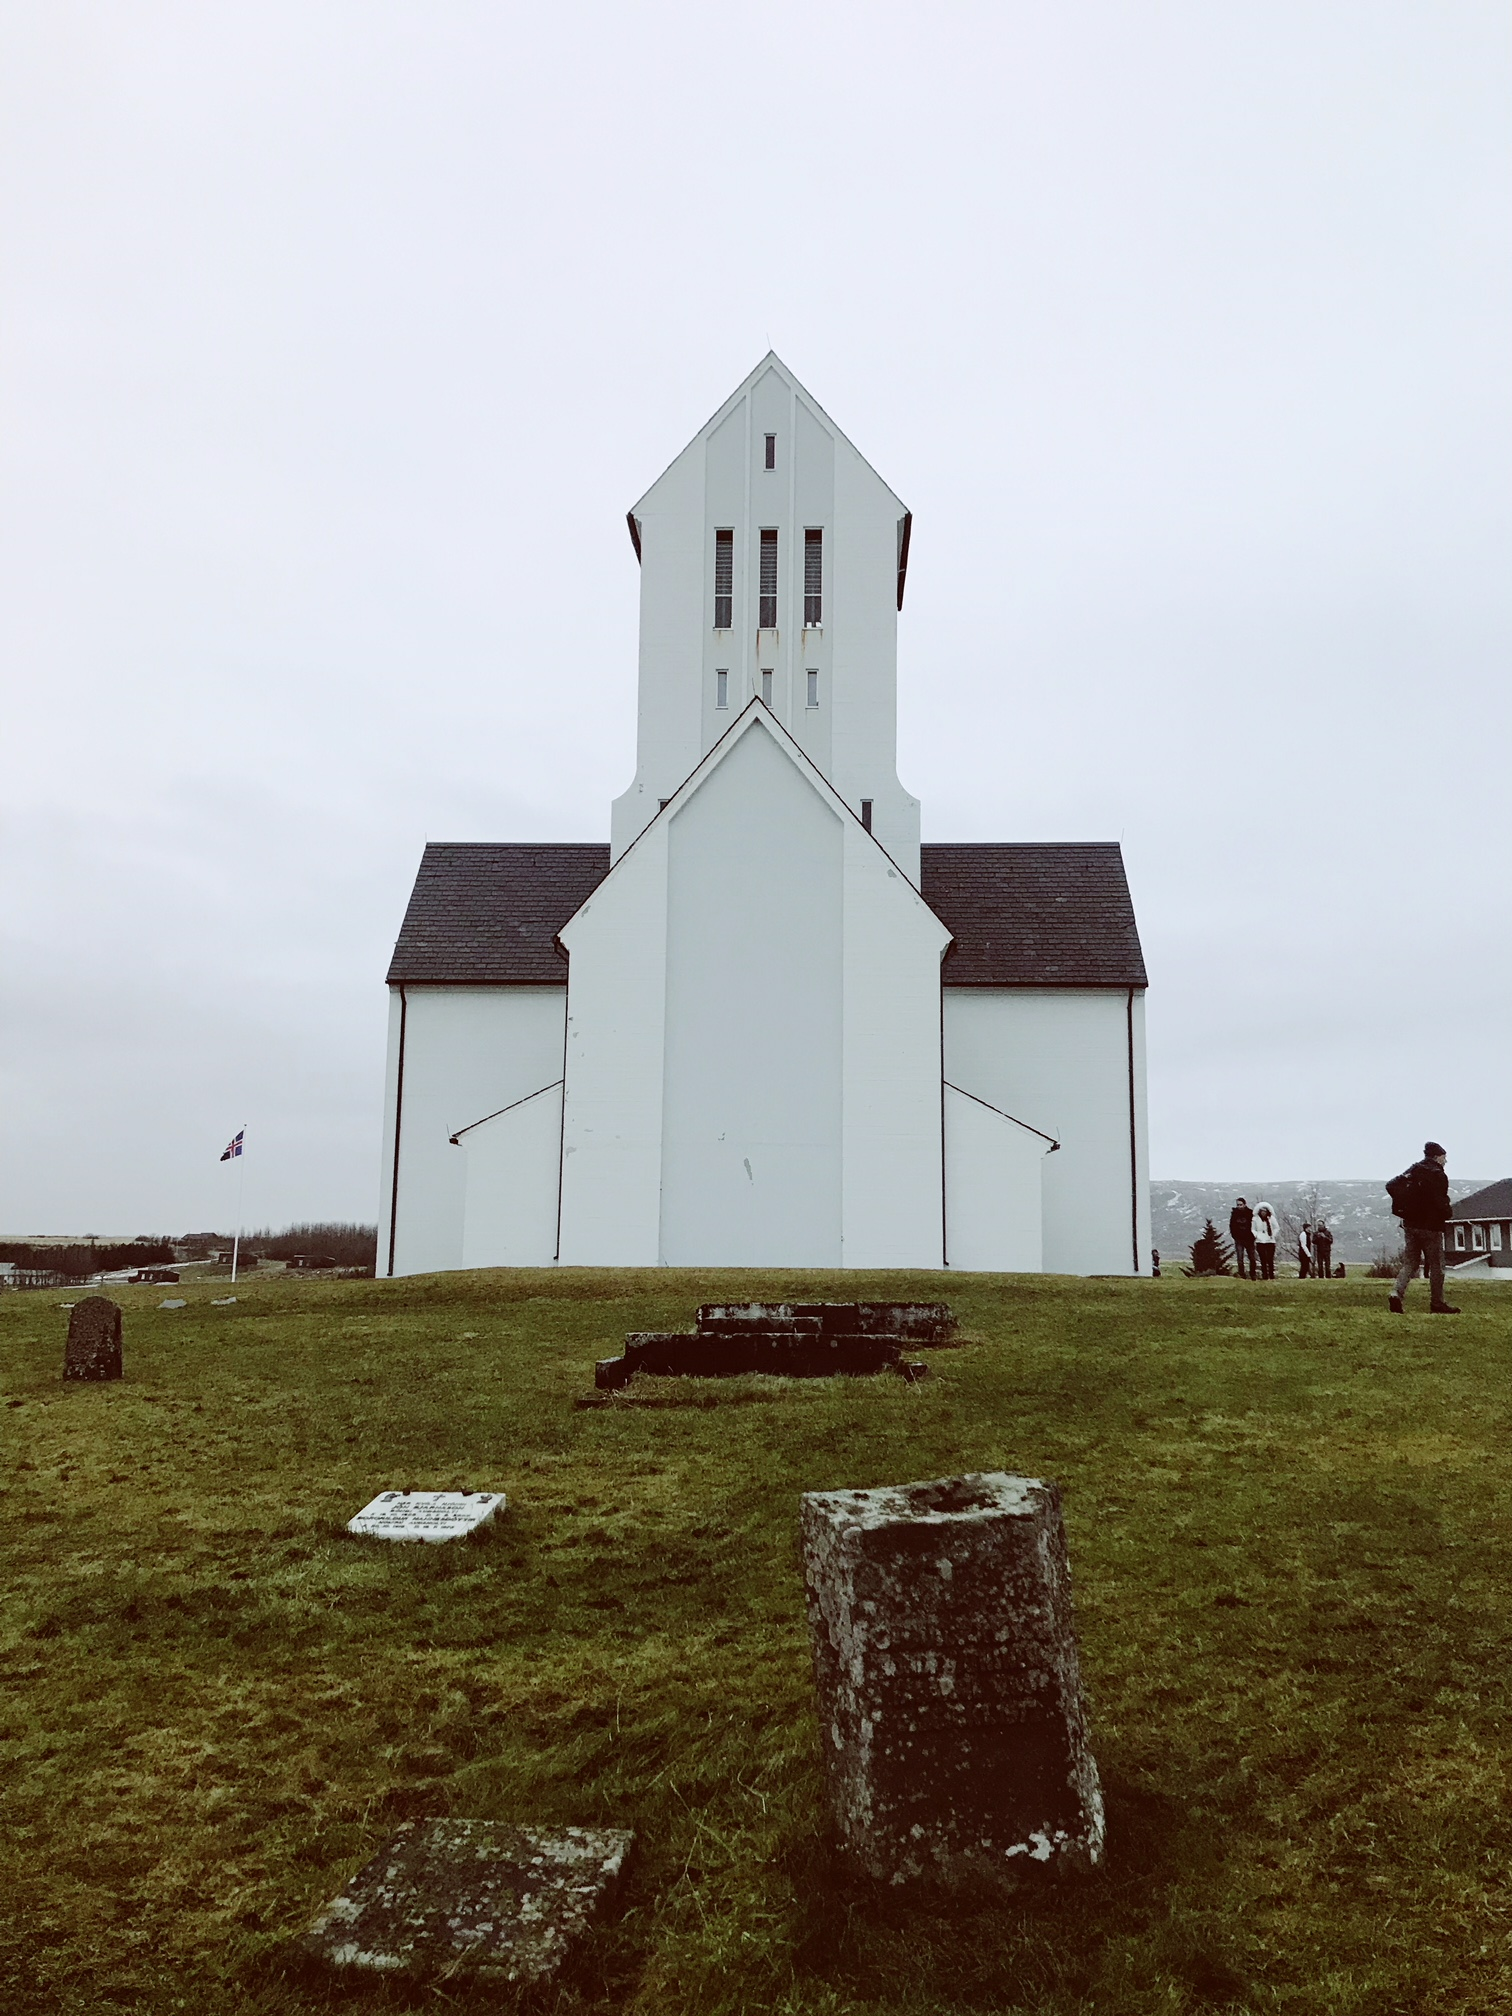 Our last stop on the tour, once of Iceland's many quaint churches. I loved the architecture of the island and its simplicity